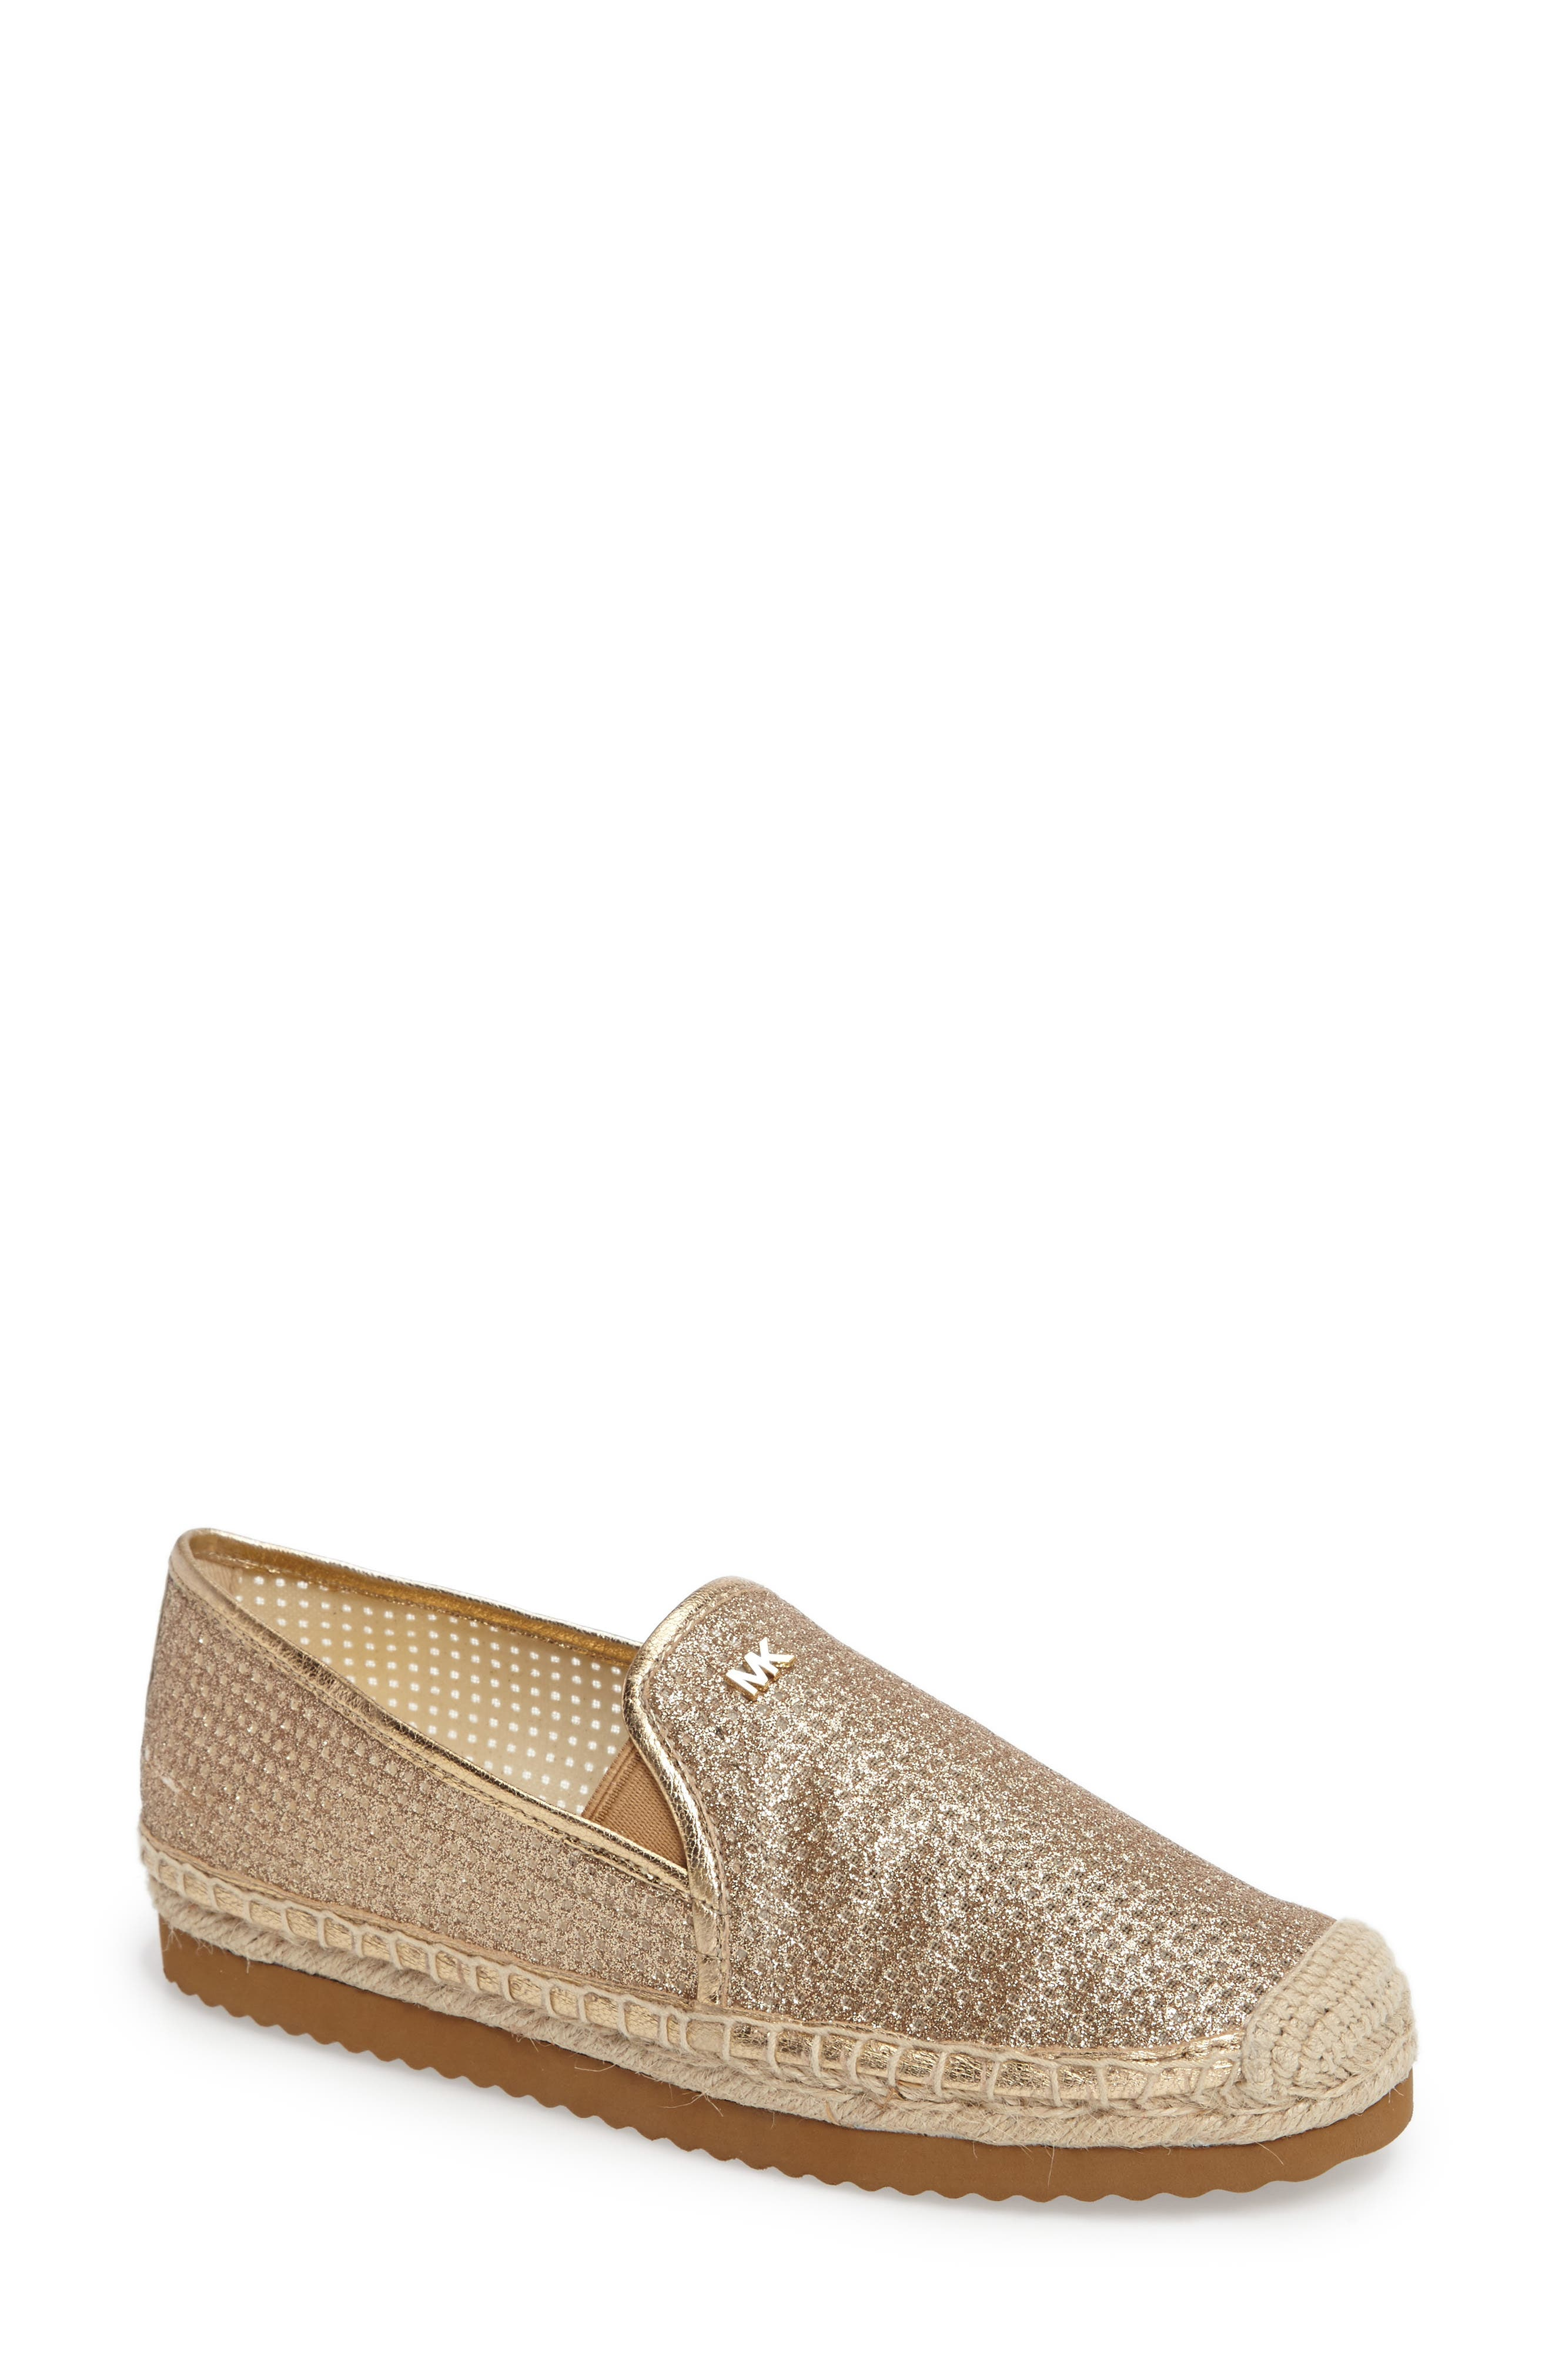 Hastings Espadrille Slip-On,                             Main thumbnail 1, color,                             Pale Gold Leather